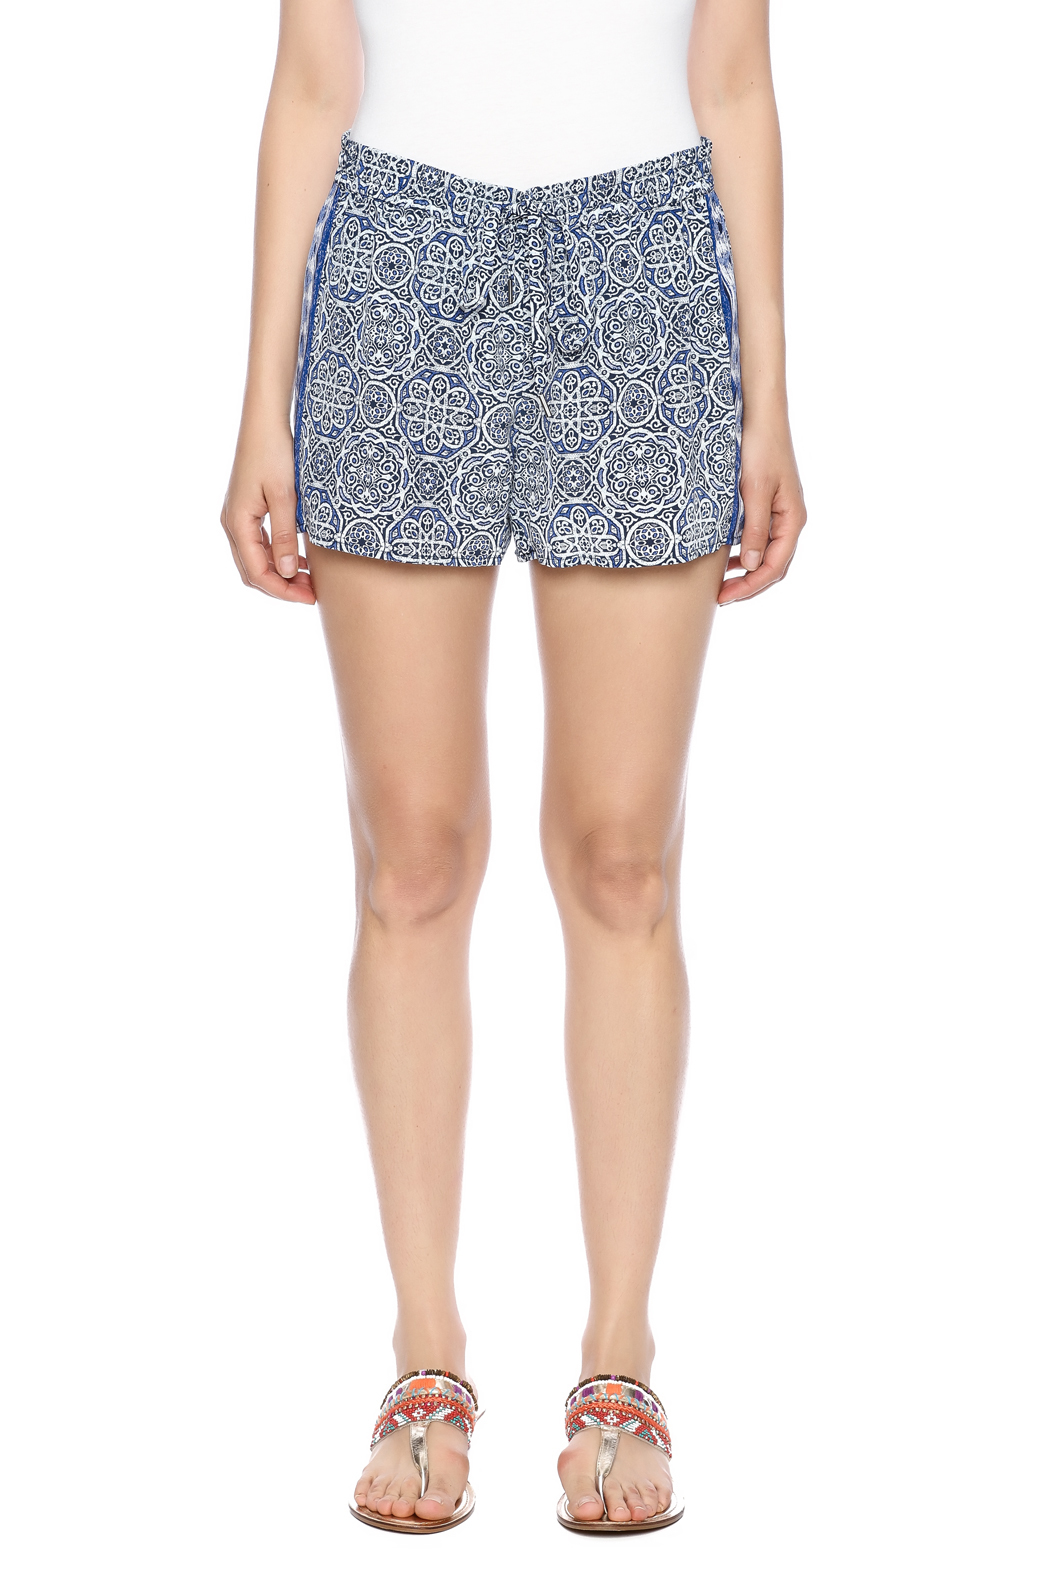 Joie Sinclair Shorts - Side Cropped Image